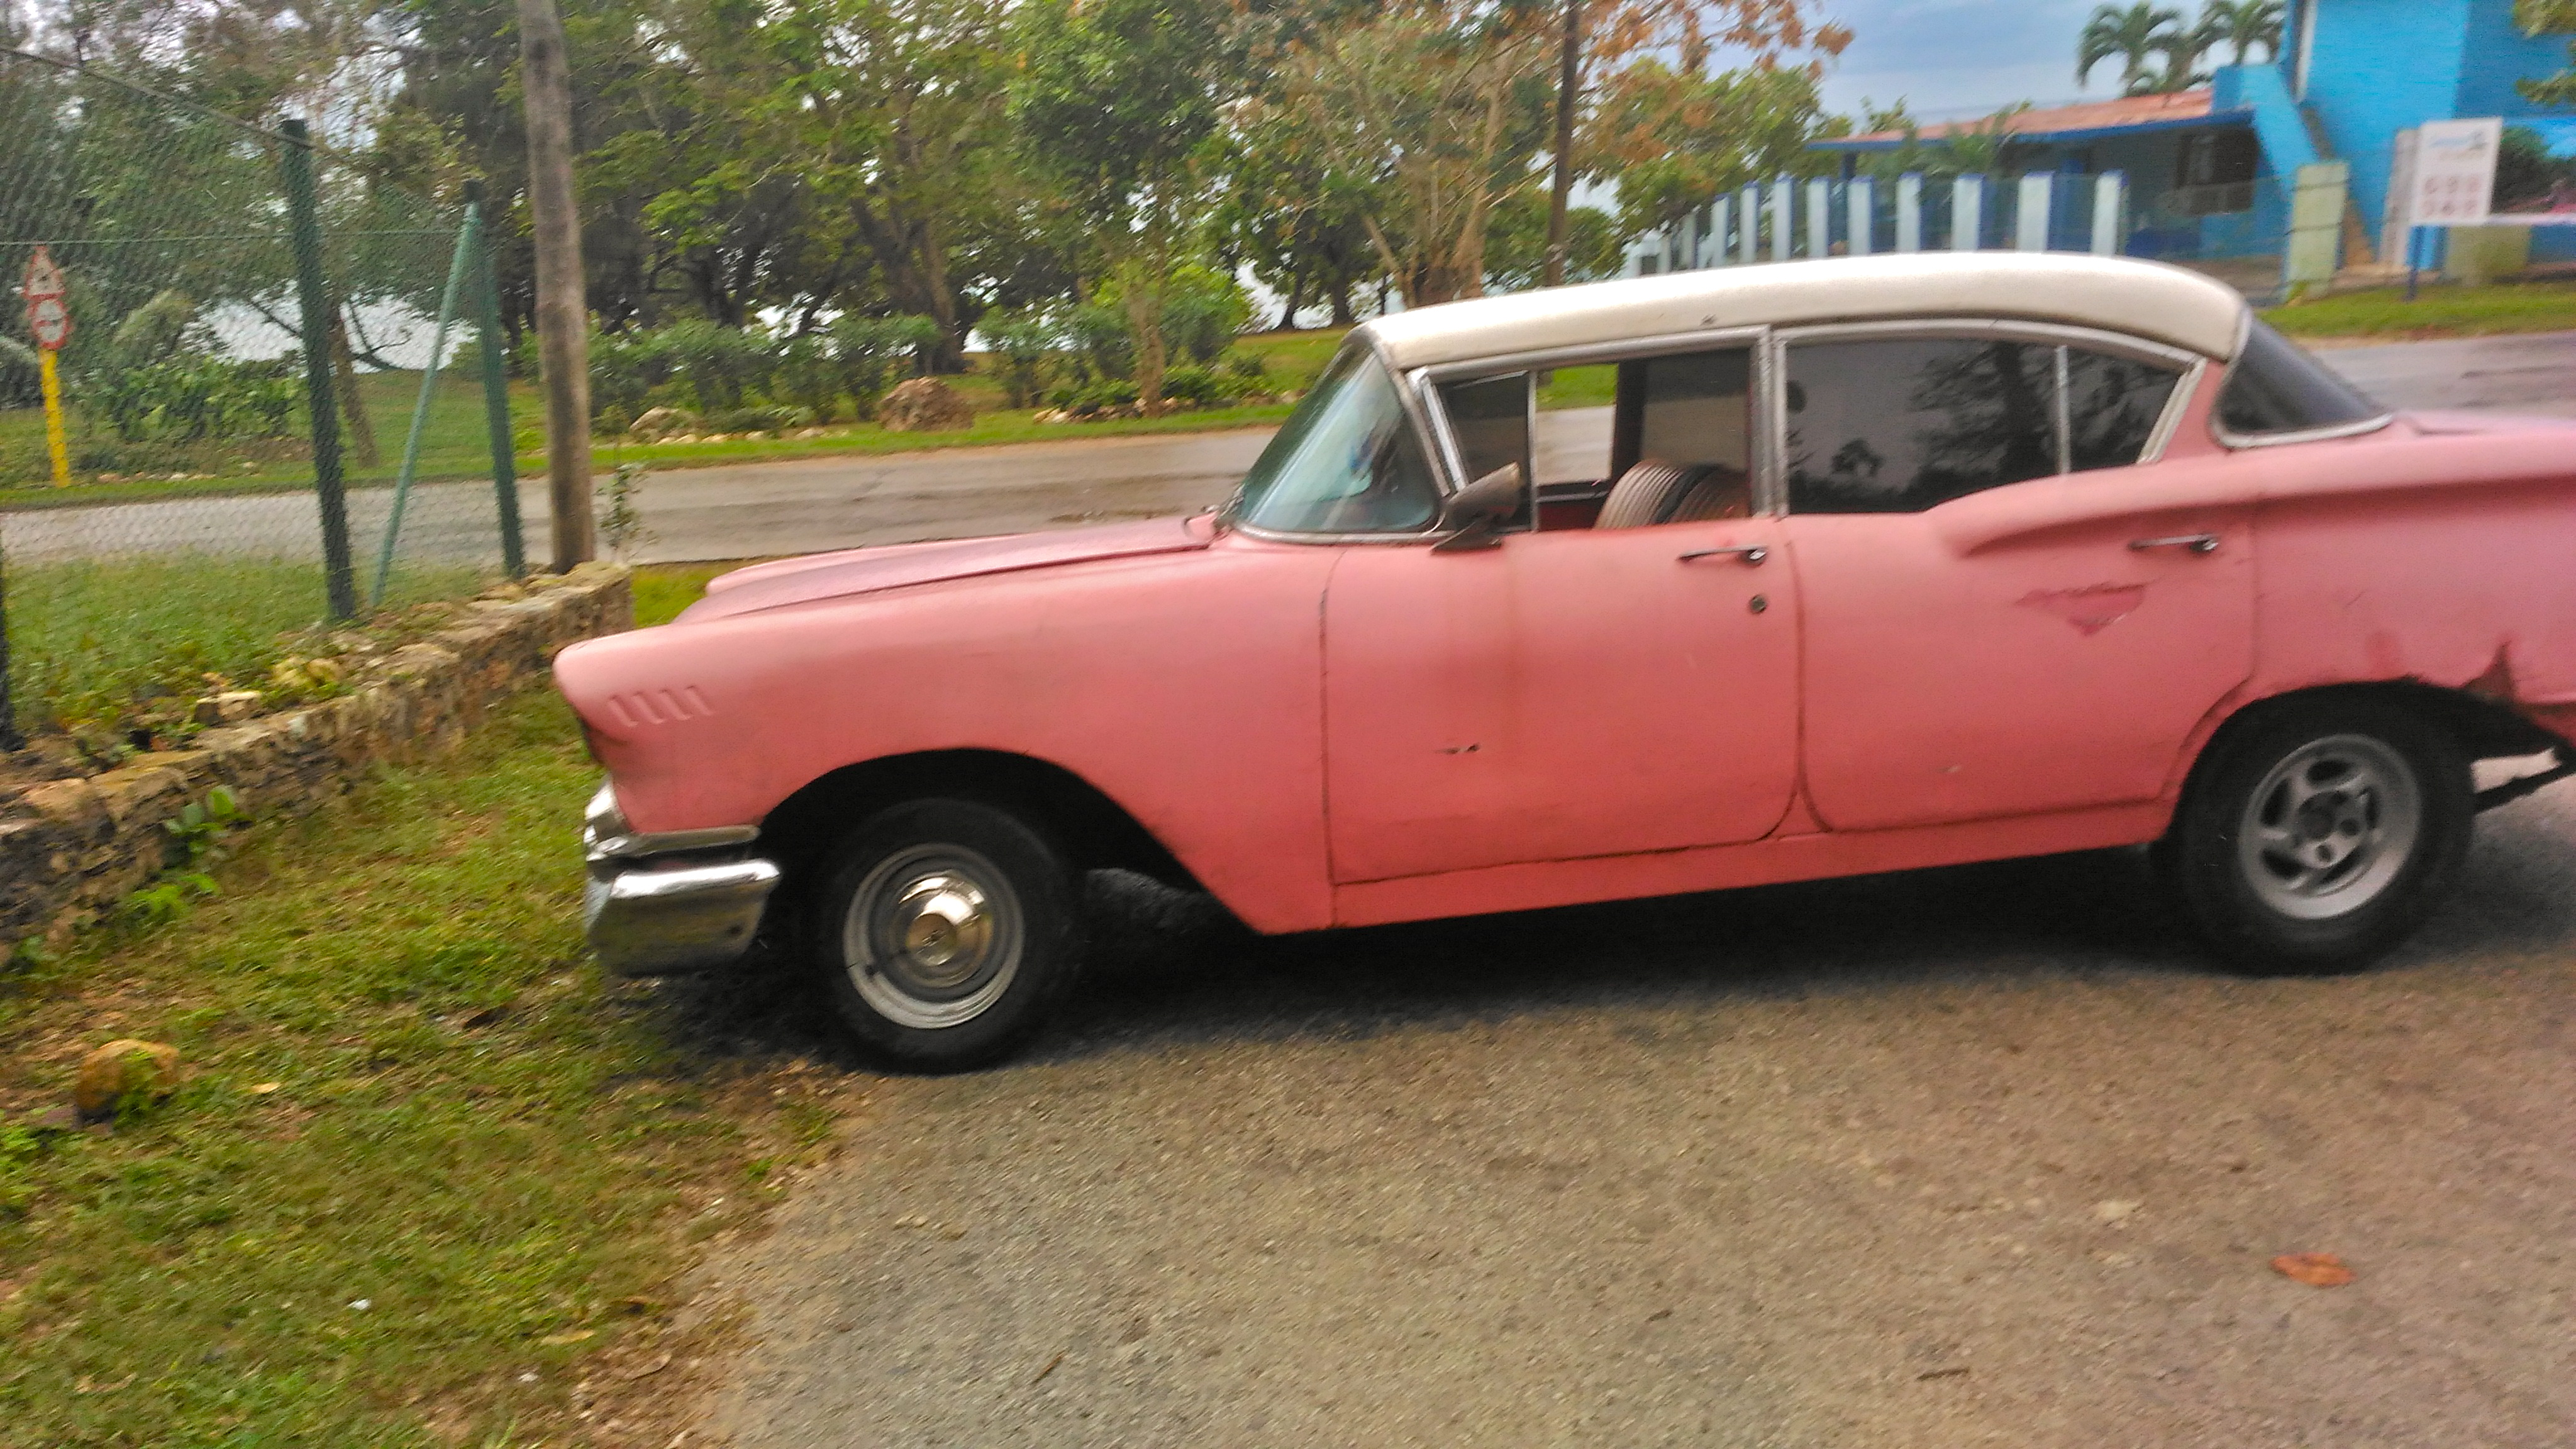 My vintage car ride in playa jibacoa cuba ways to get around cuba solo travel blogs from cuba can you travel independently in cuba